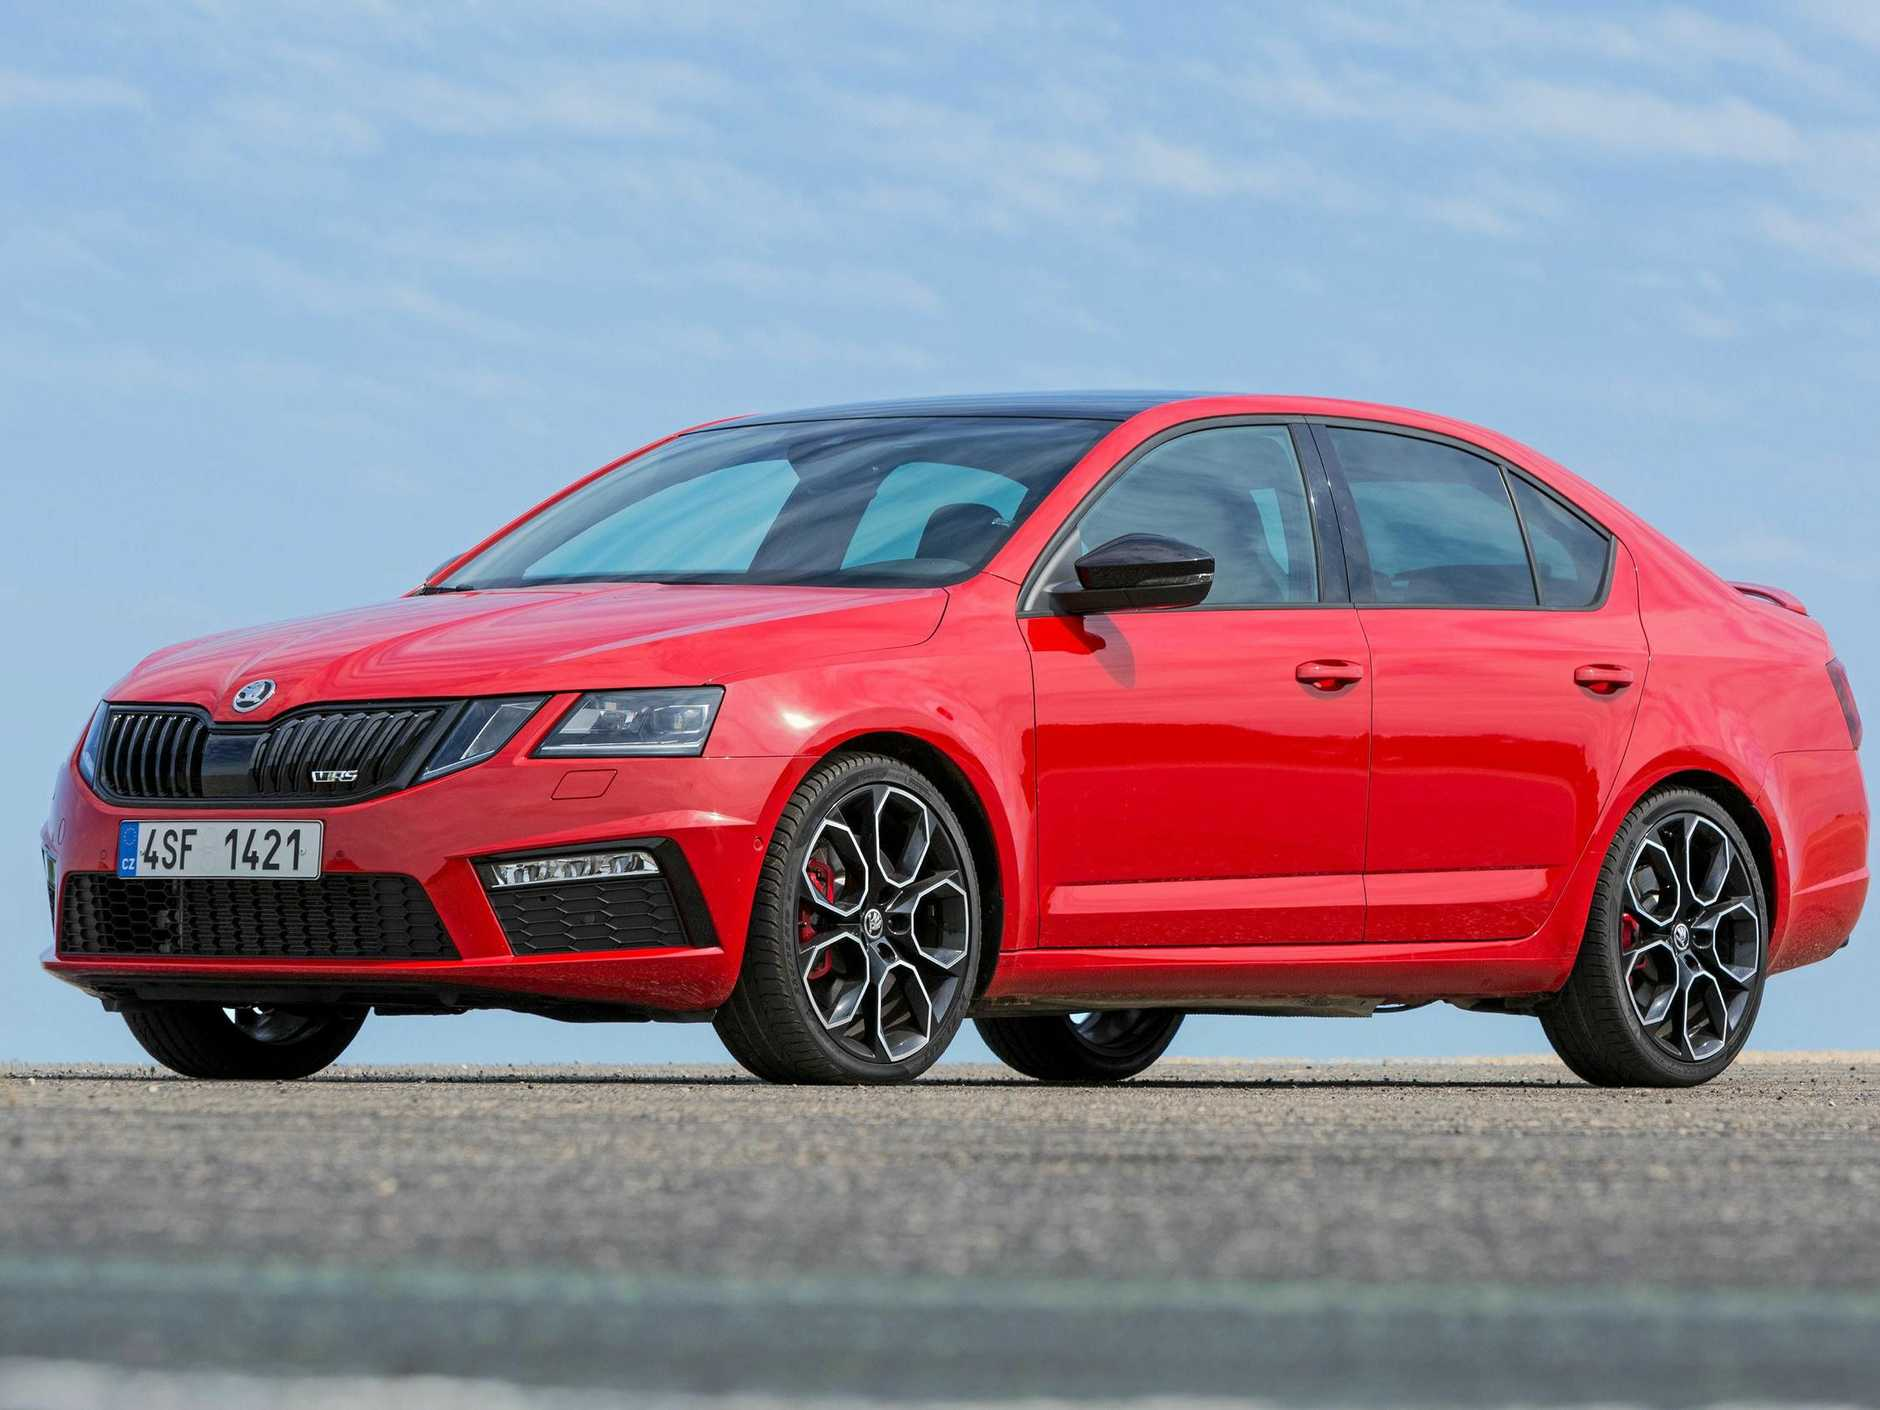 2018 Skoda Octavia RS 245 sedan has 180kW and 370Nm and high level of equipment over and above the standard RS.